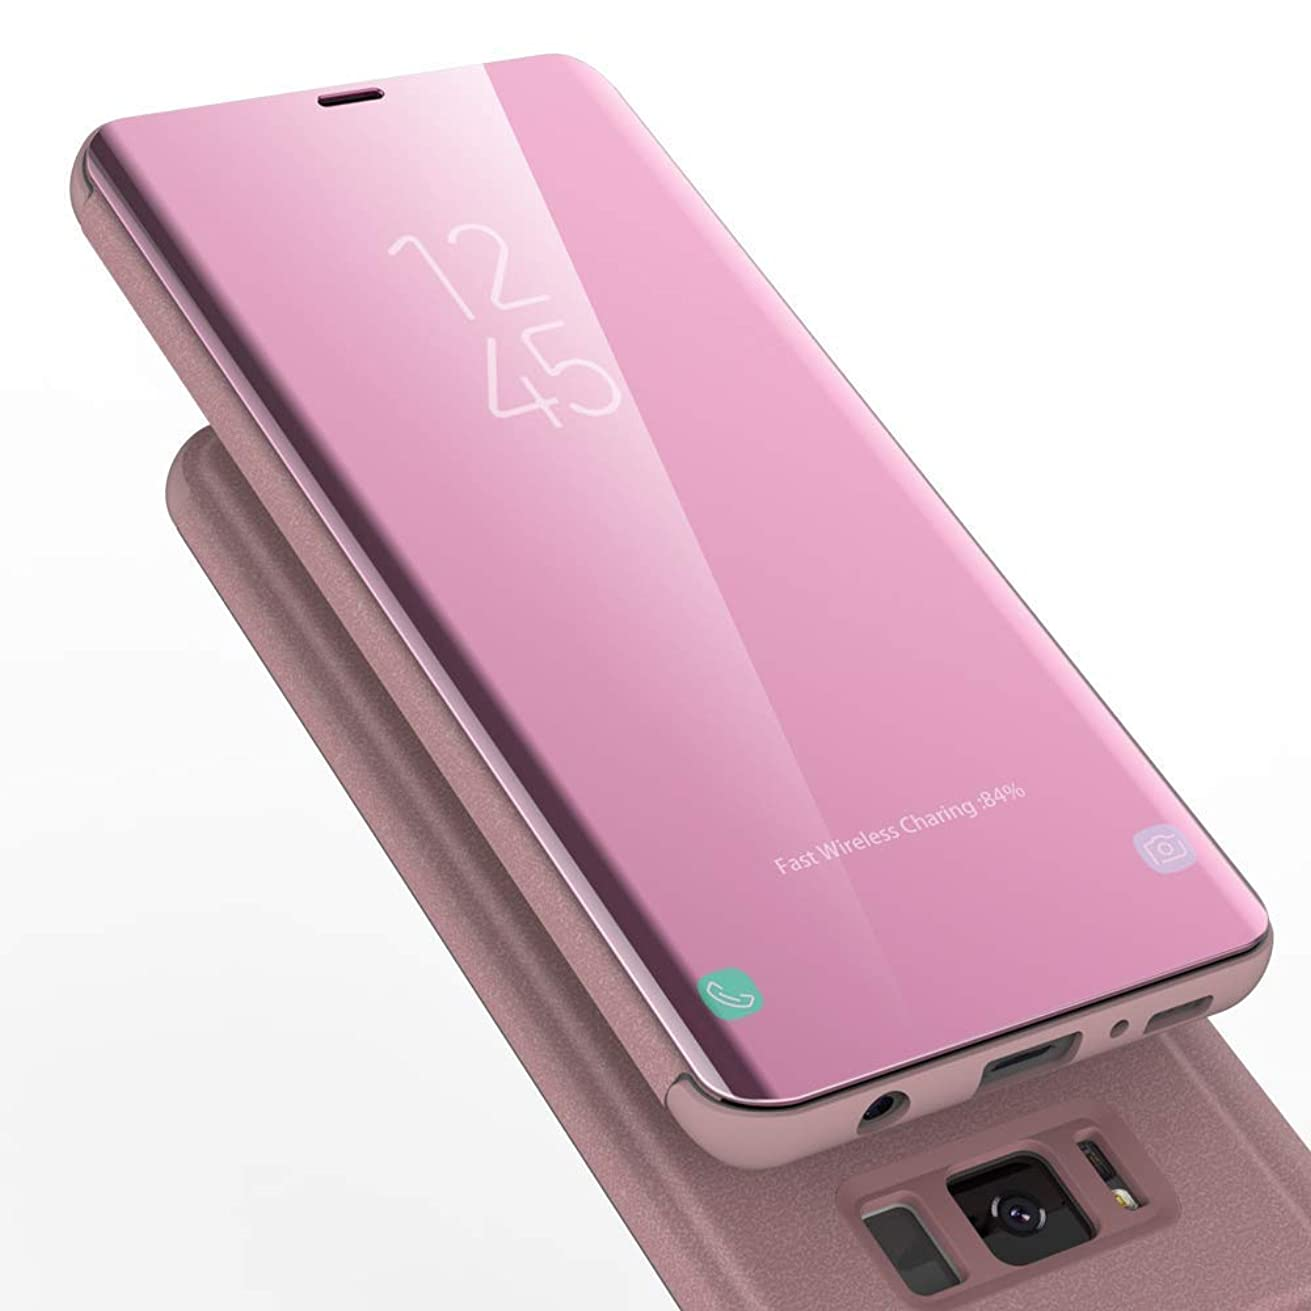 Samsung S8 Case, AURSEN Mirror View Flip Cover, PU Leather Magnetic Protective Cover with Kickstand Phone Case for Samsung Galaxy S8 - Rose Gold